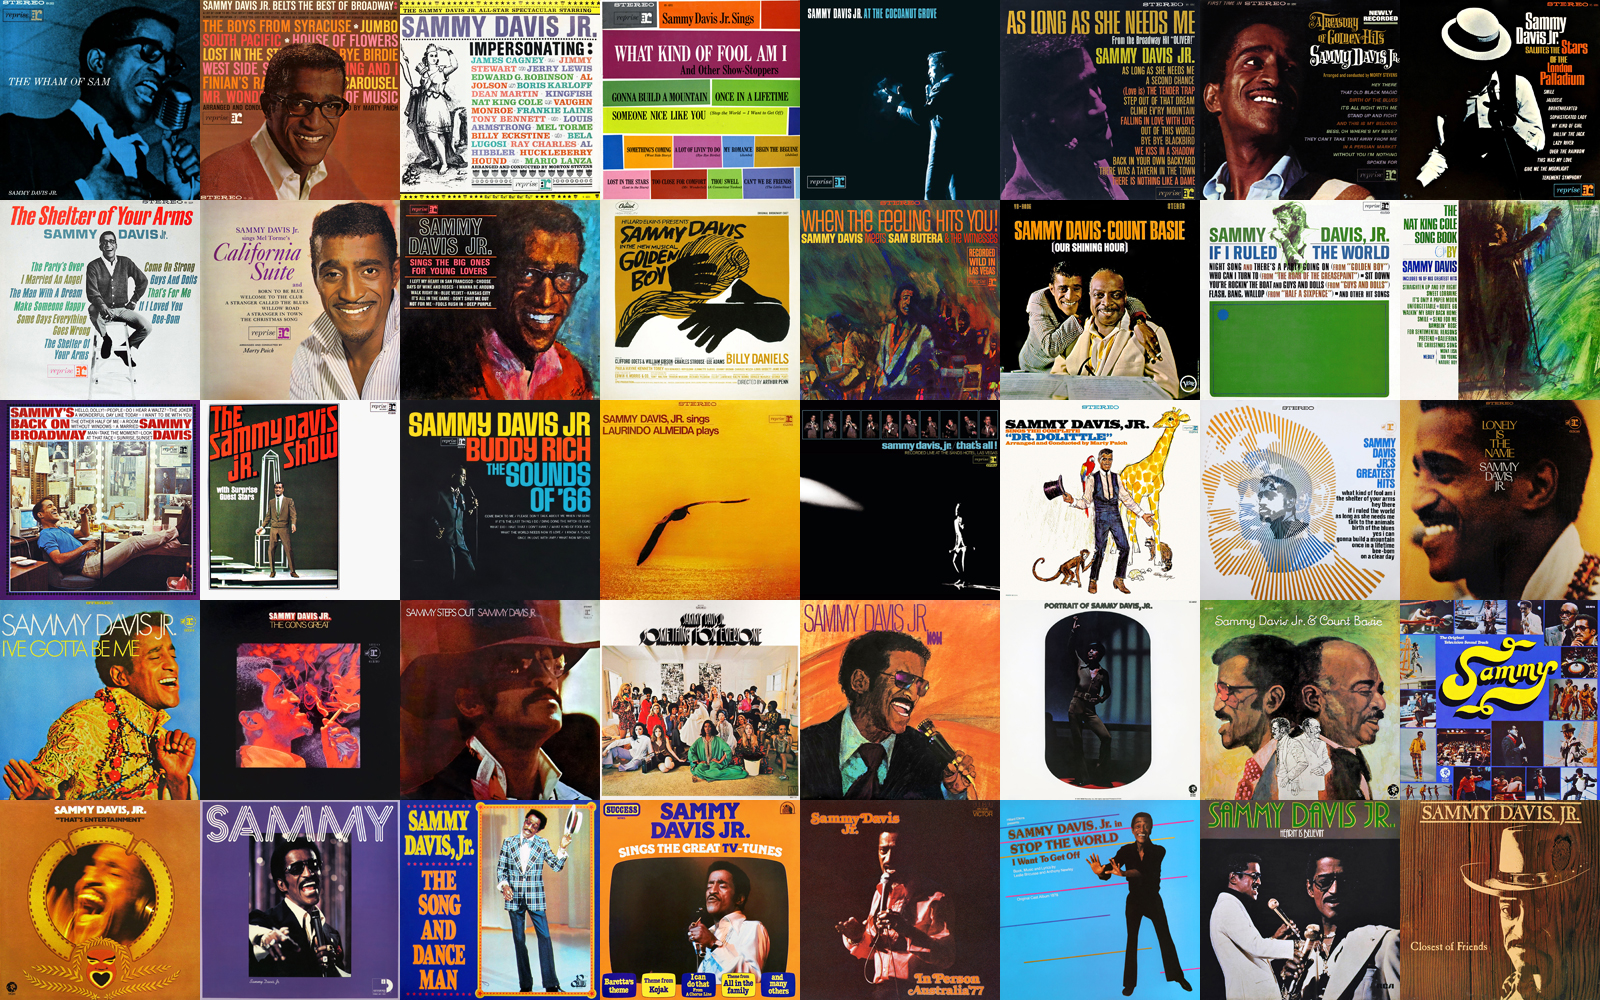 Sammy Davis, Jr. albums on Reprise, Motown, MGM, 20th Century, RCA and Warner/Curb